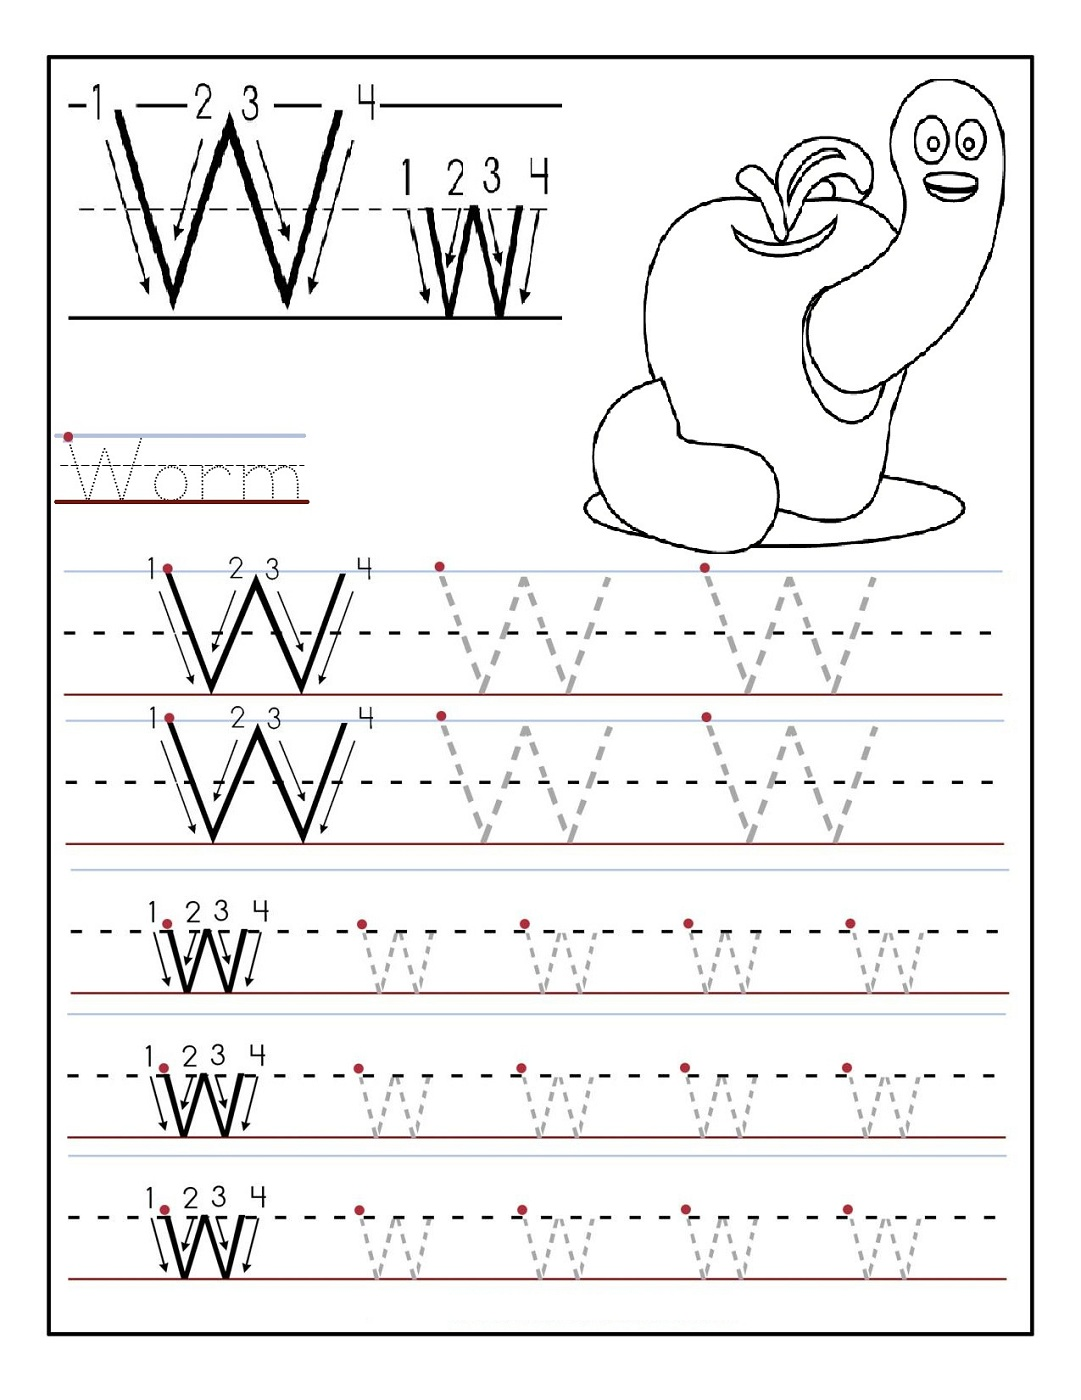 Writing Alphabets For Preschoolers